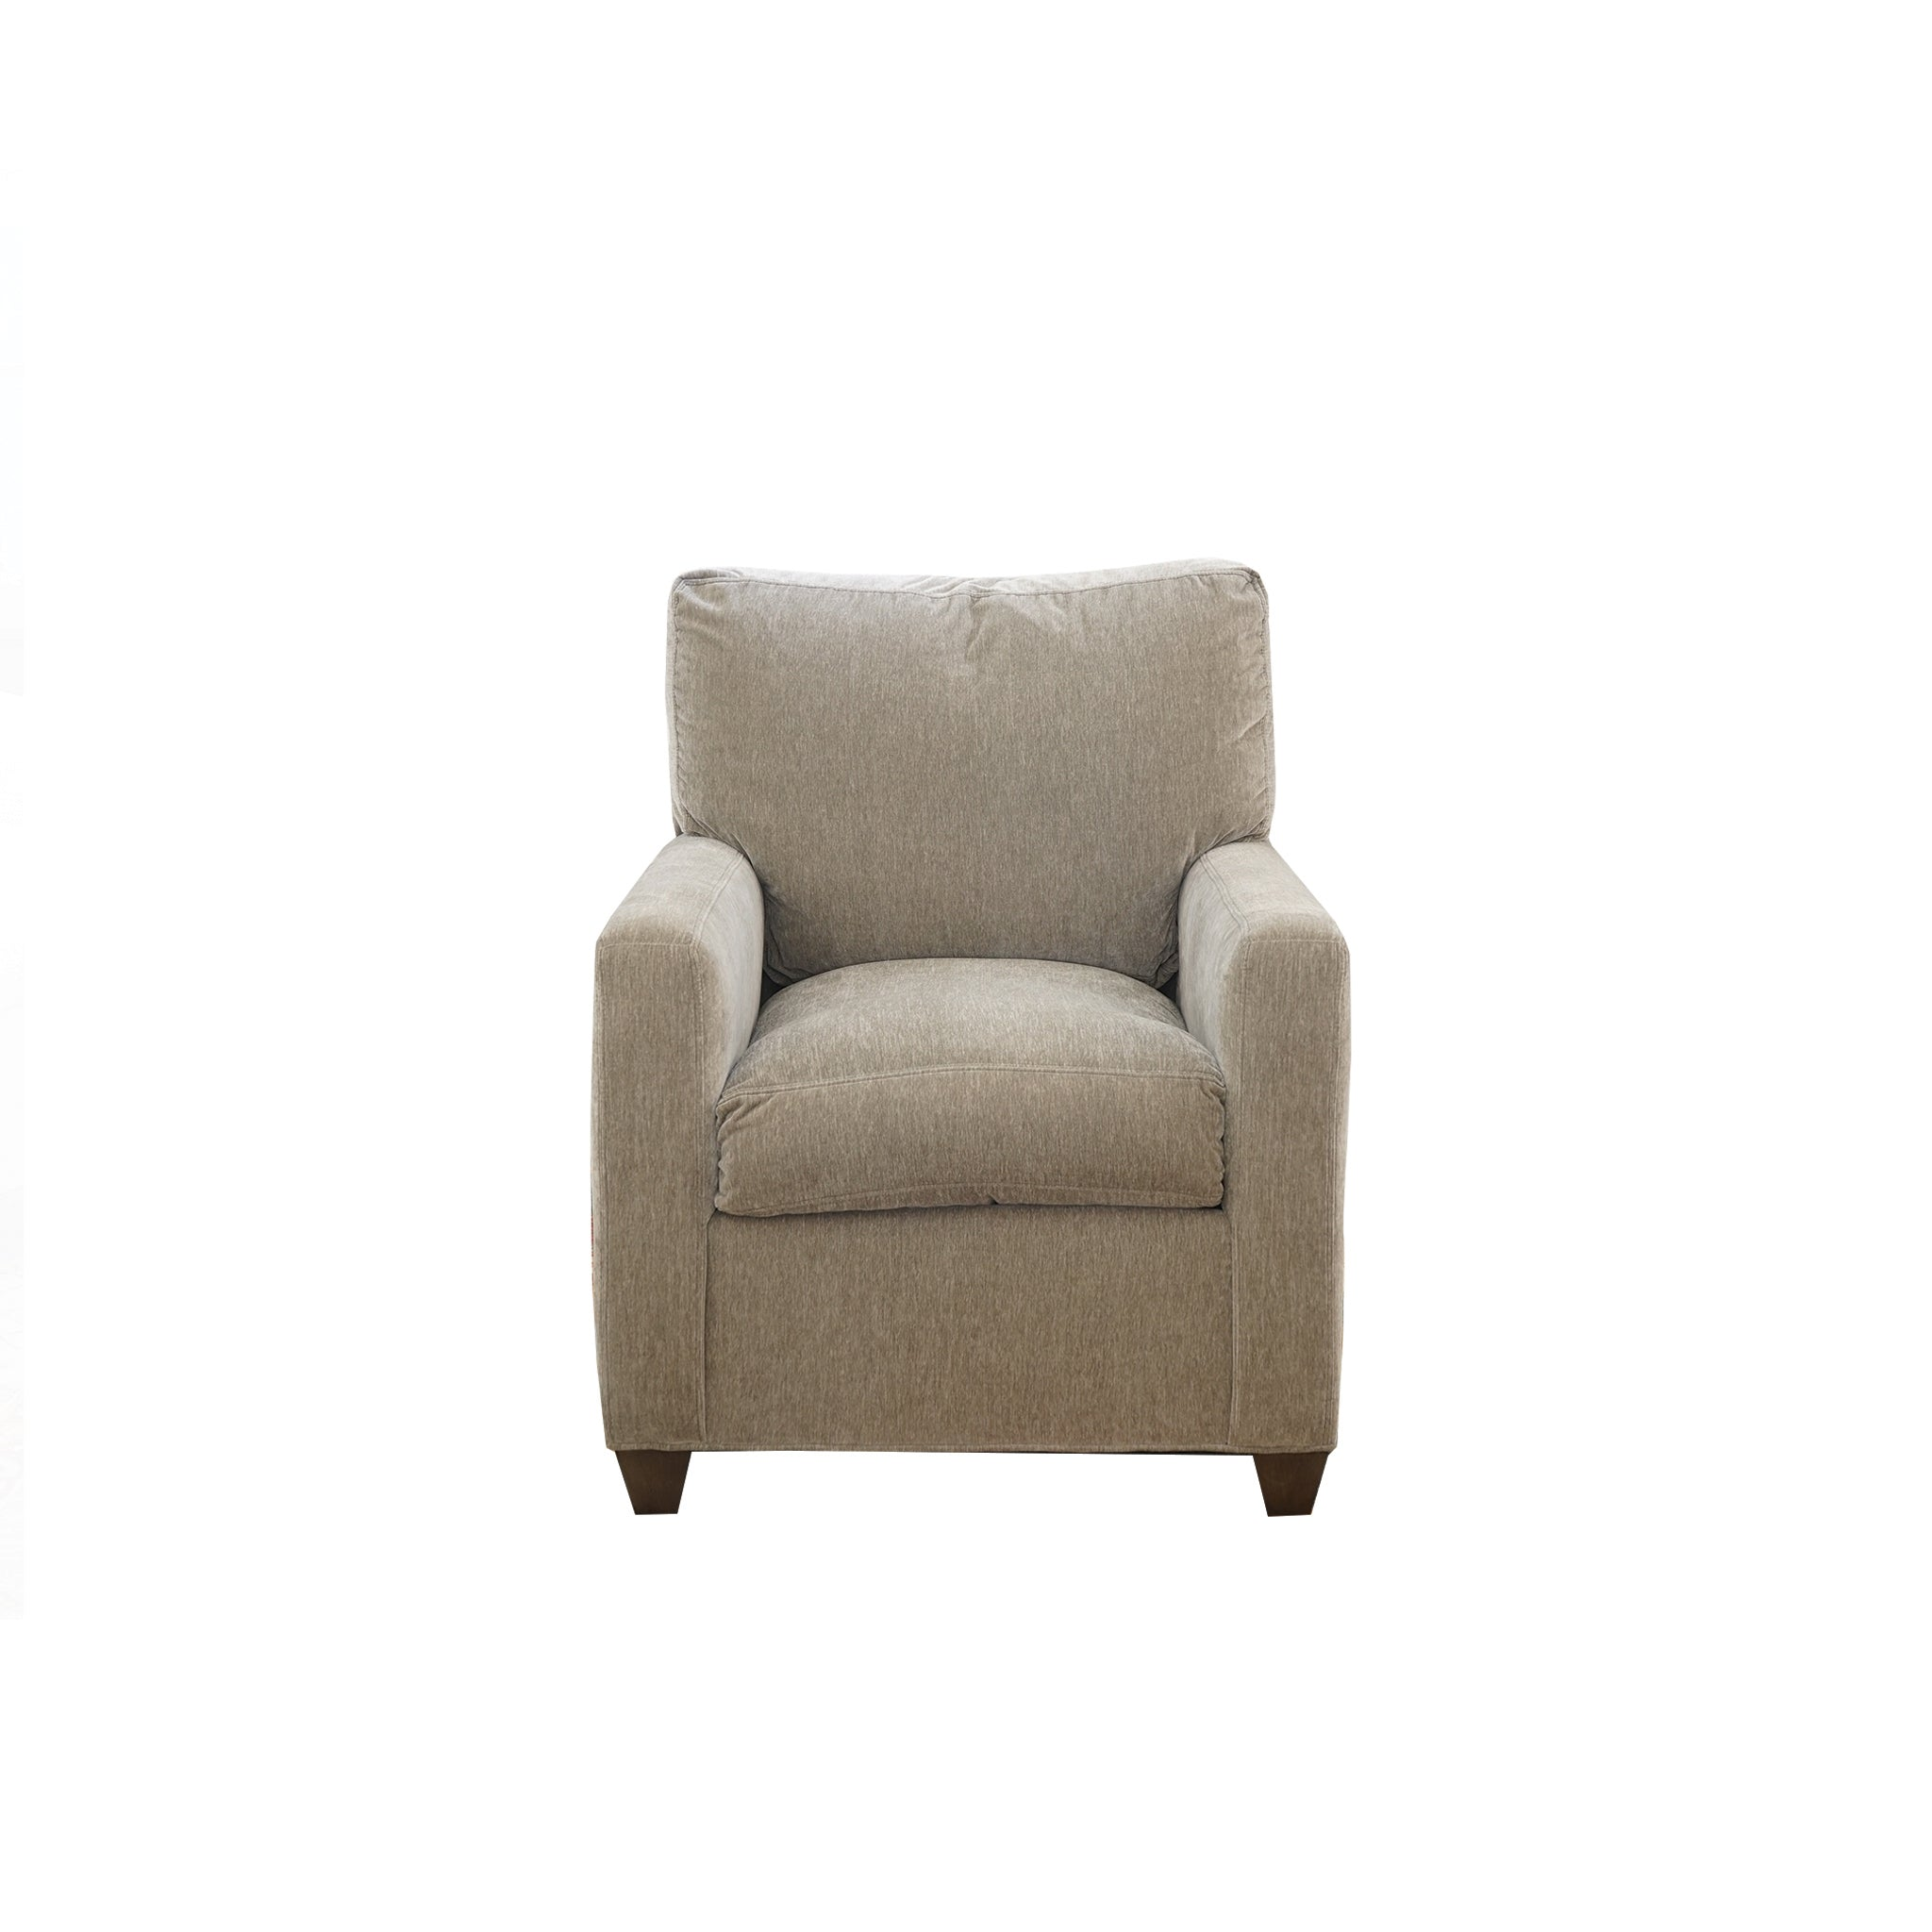 Sam Club Chair